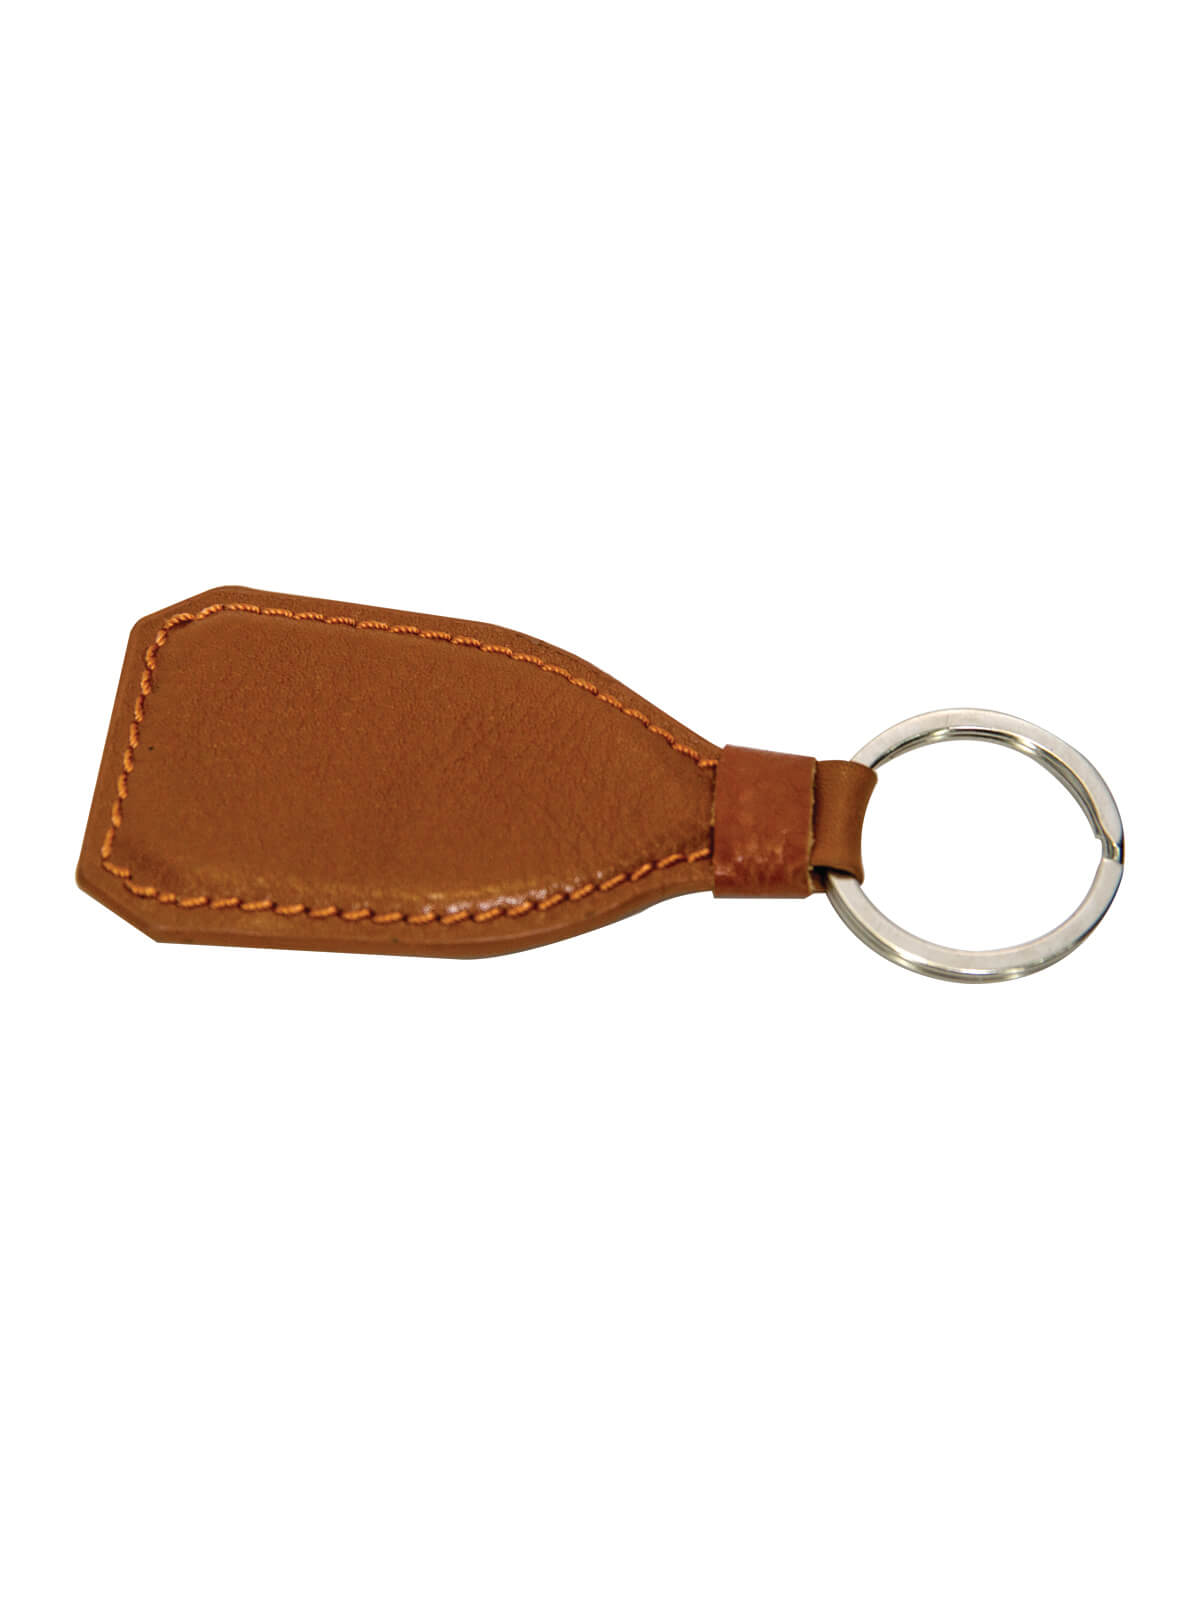 Brown Leather Key Ring For Men